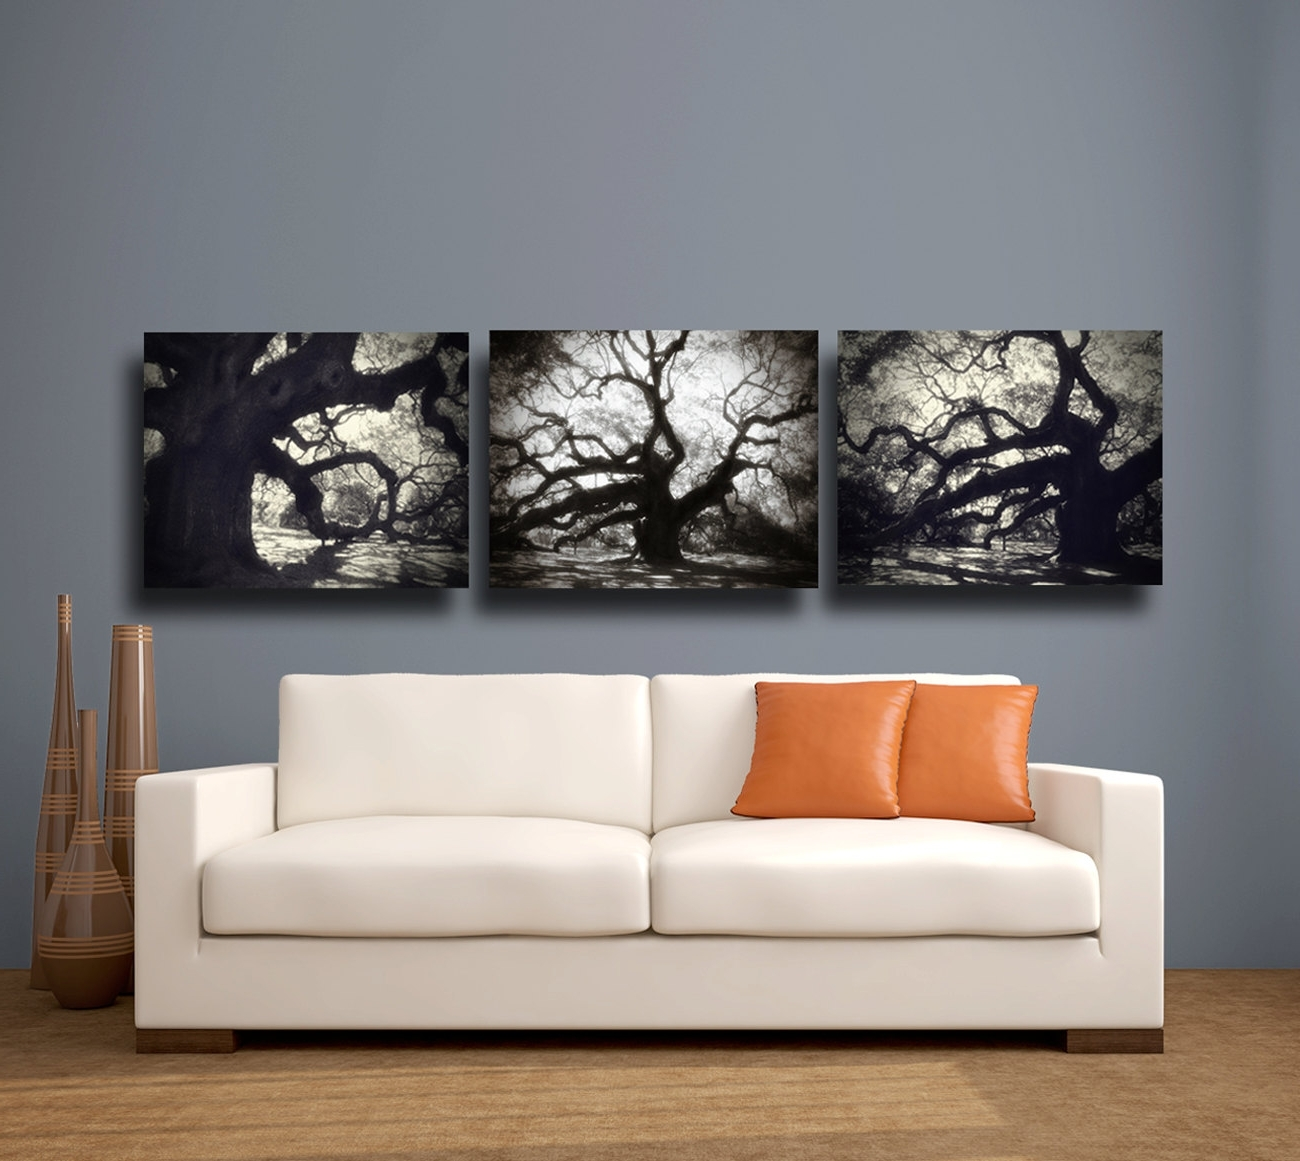 Best And Newest Wall Art Designs: Black And White Canvas Wall Art Astounding Pertaining To Photography Canvas Wall Art (Gallery 6 of 15)